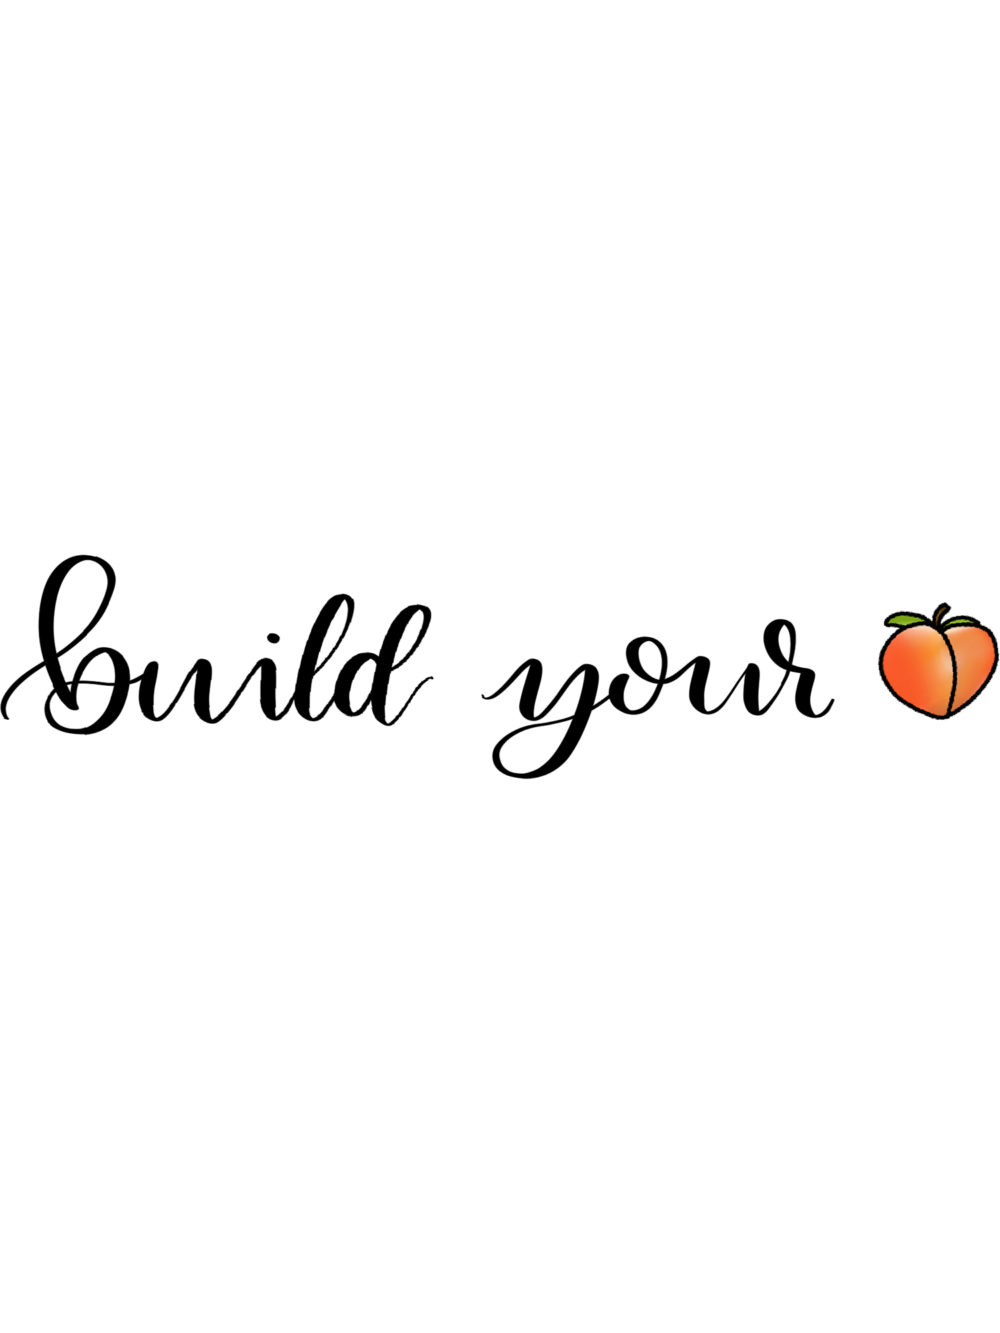 build your booty brush lettering